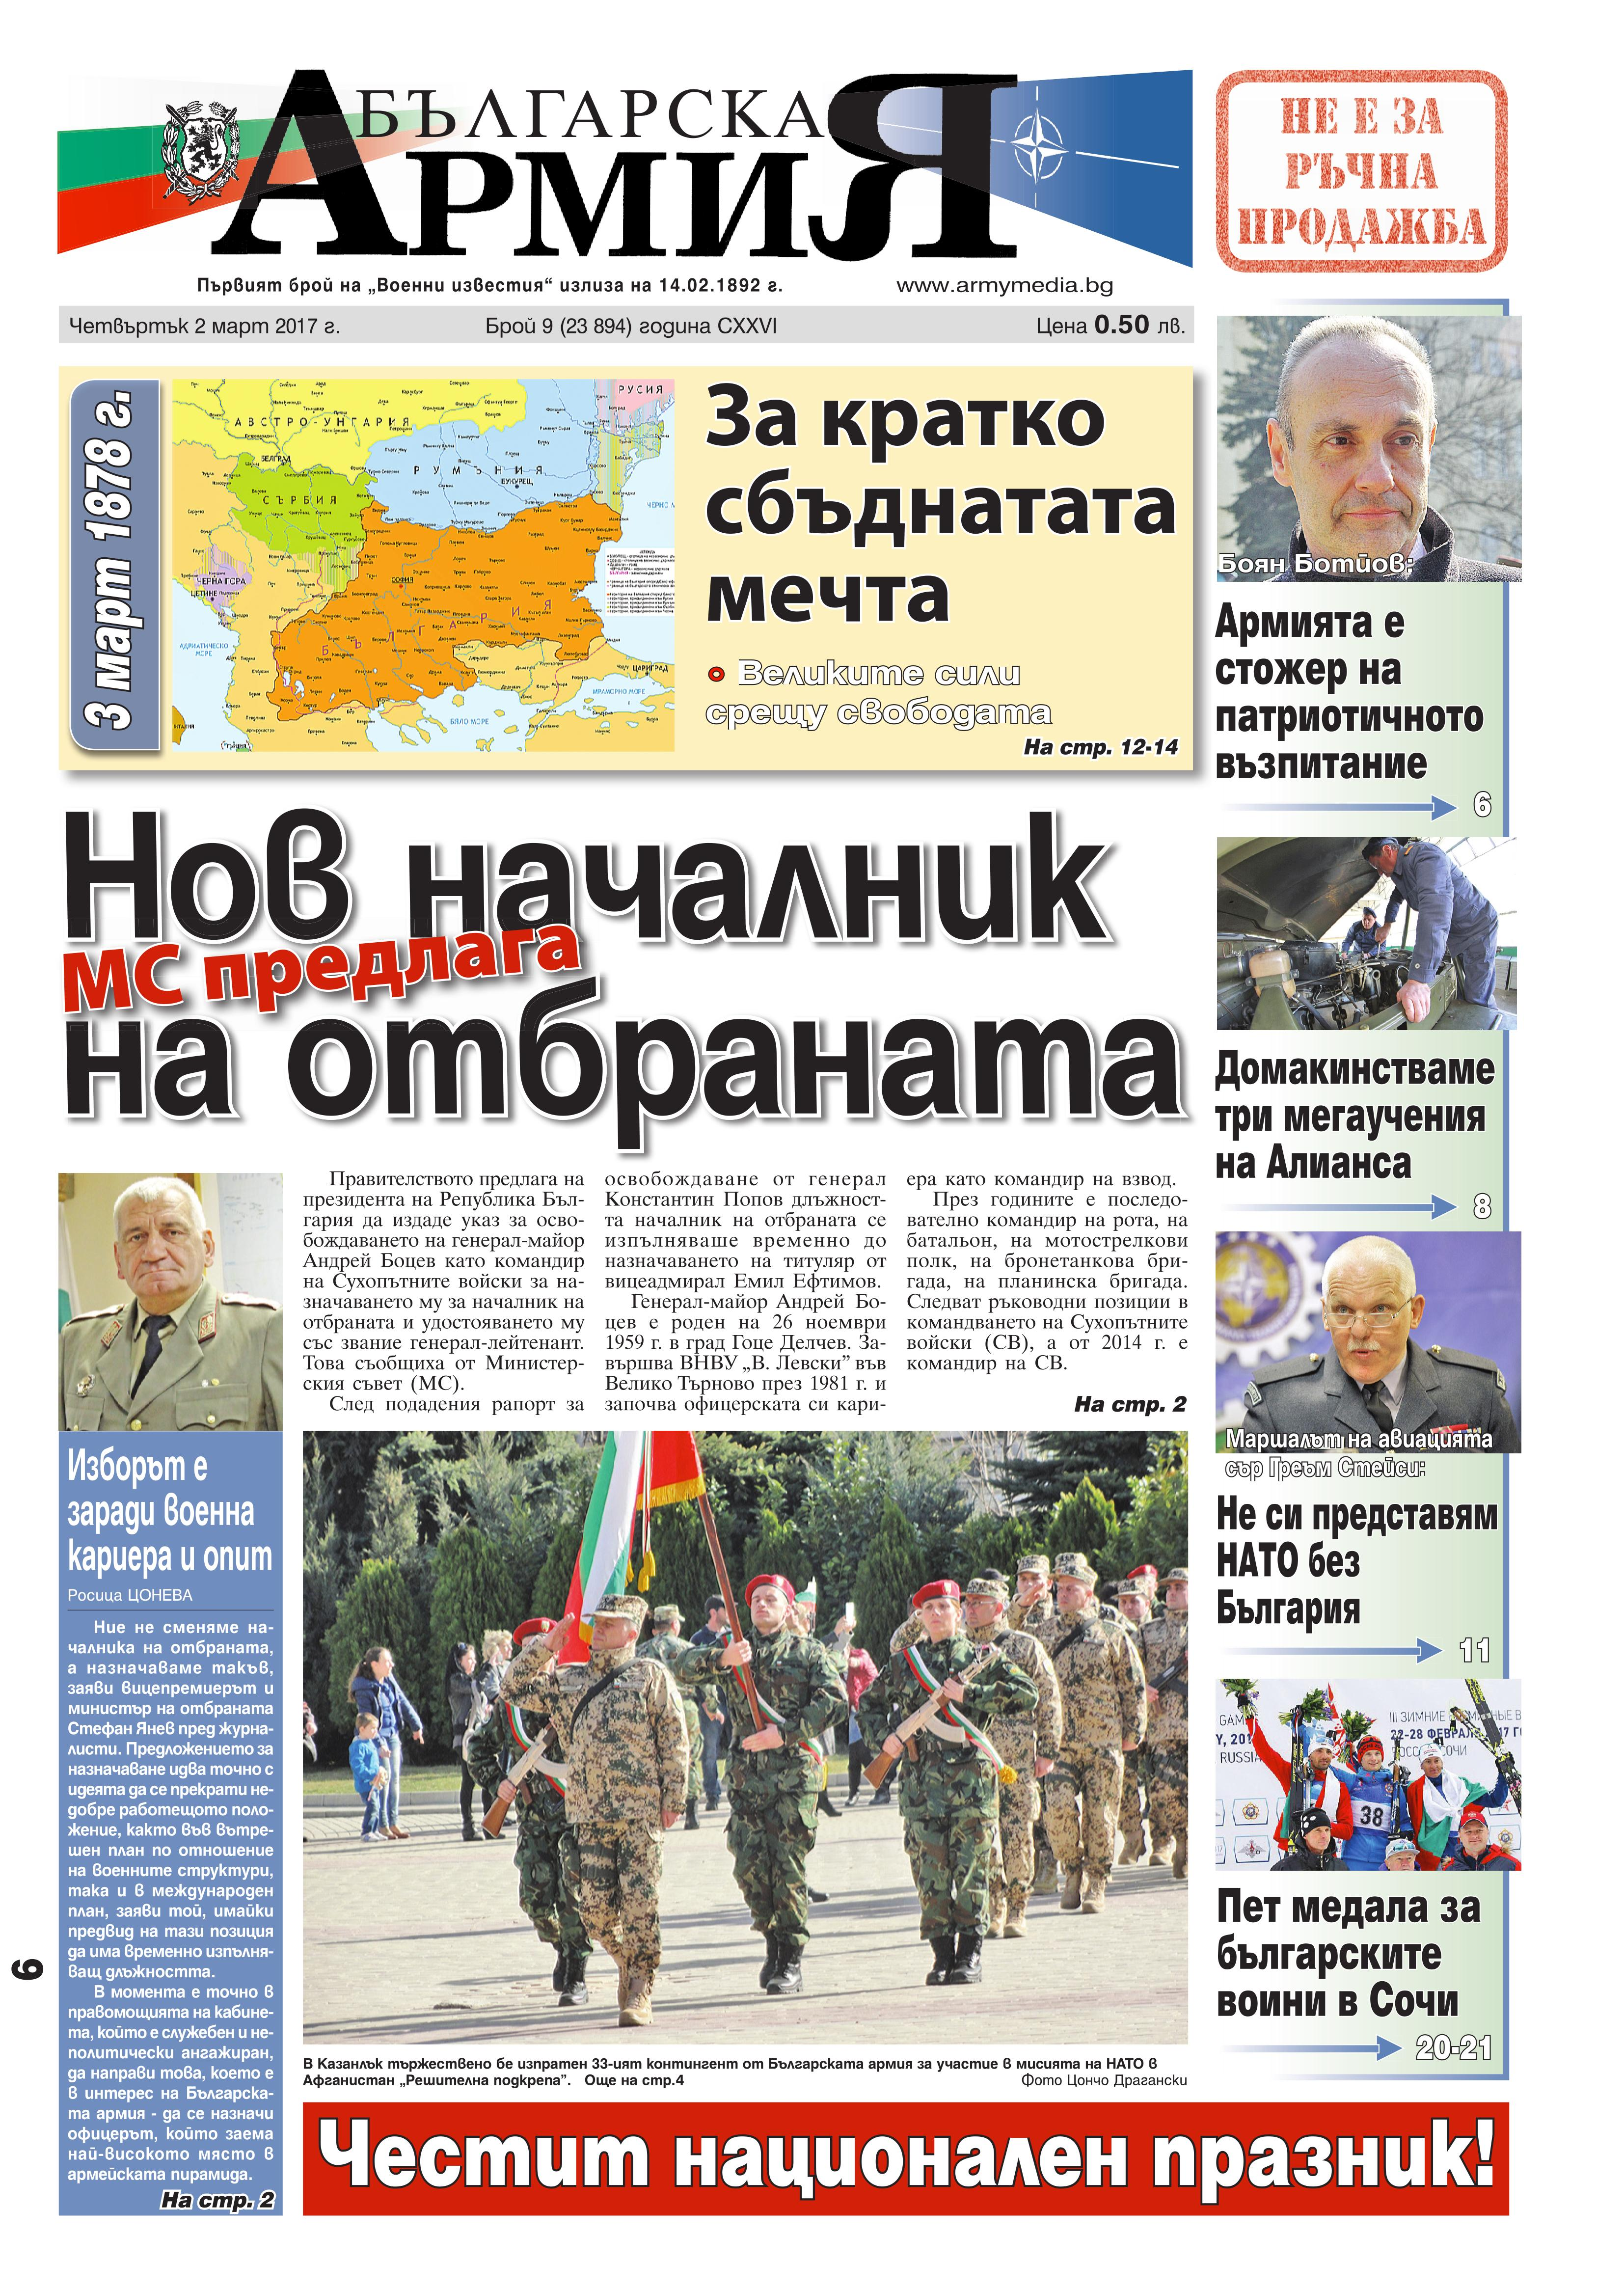 https://www.armymedia.bg/wp-content/uploads/2015/06/01.page1_-15.jpg